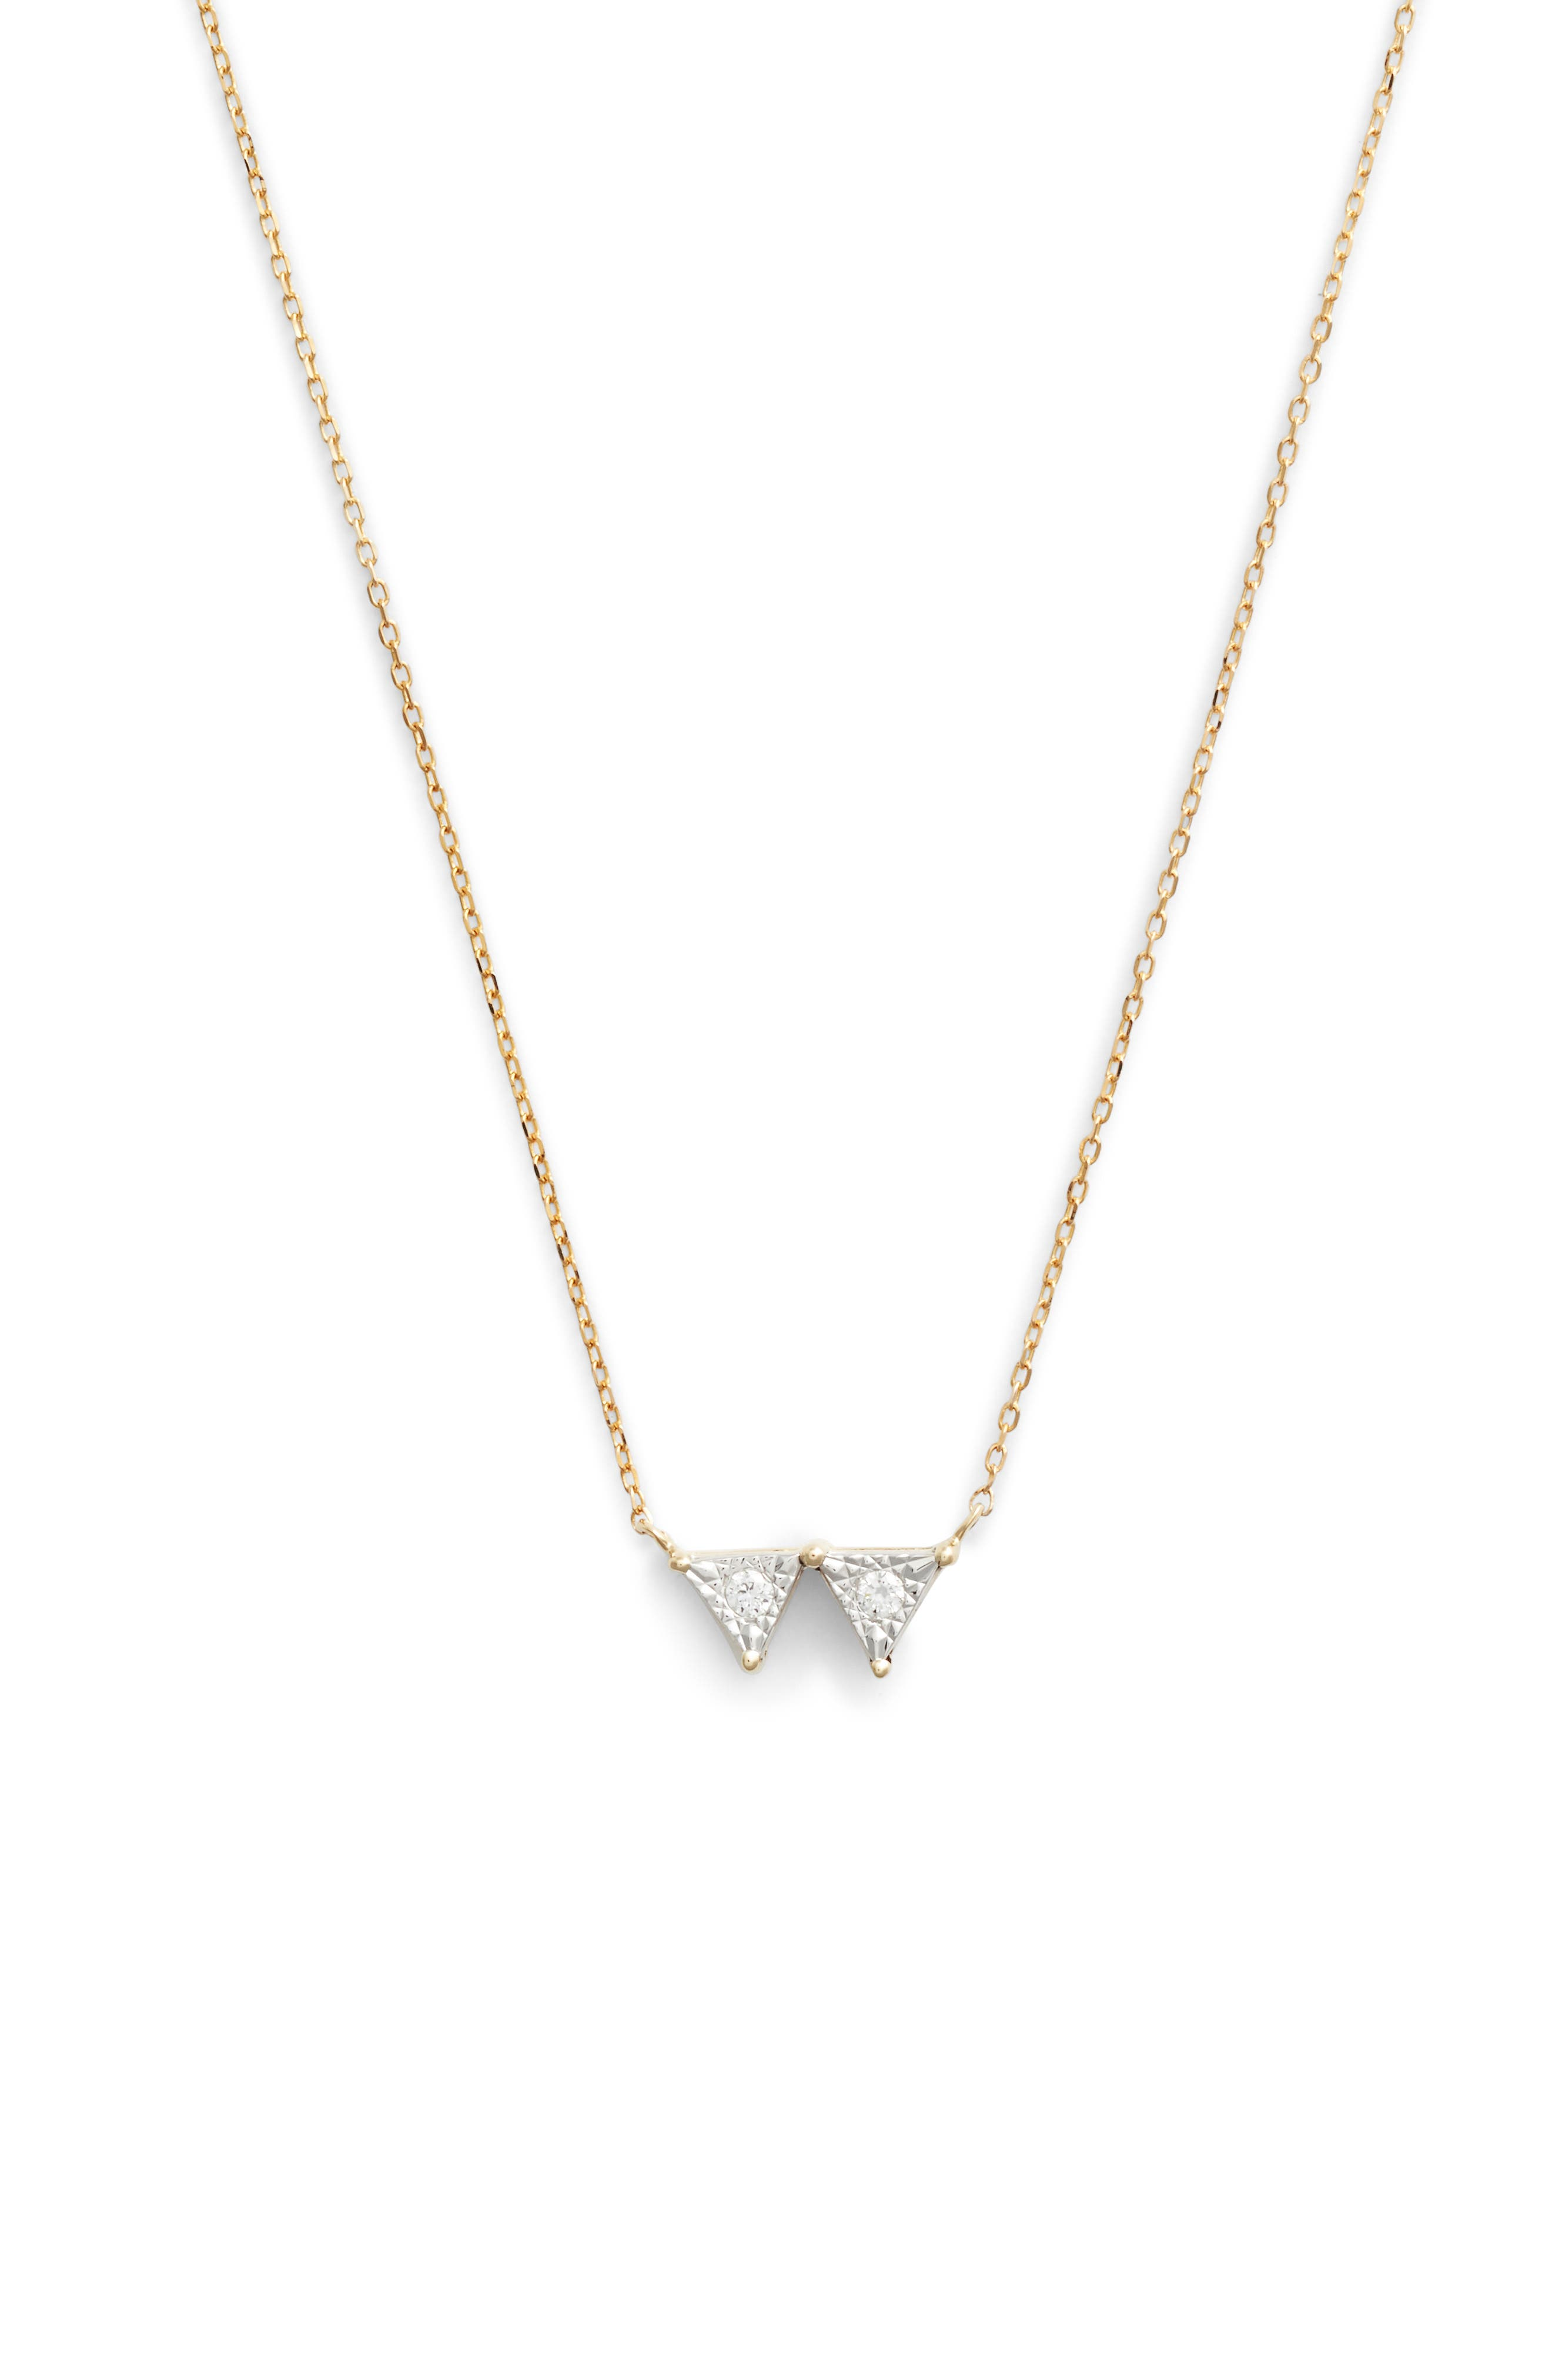 Emily Sarah Double Triangle Diamond Necklace,                         Main,                         color, YELLOW GOLD